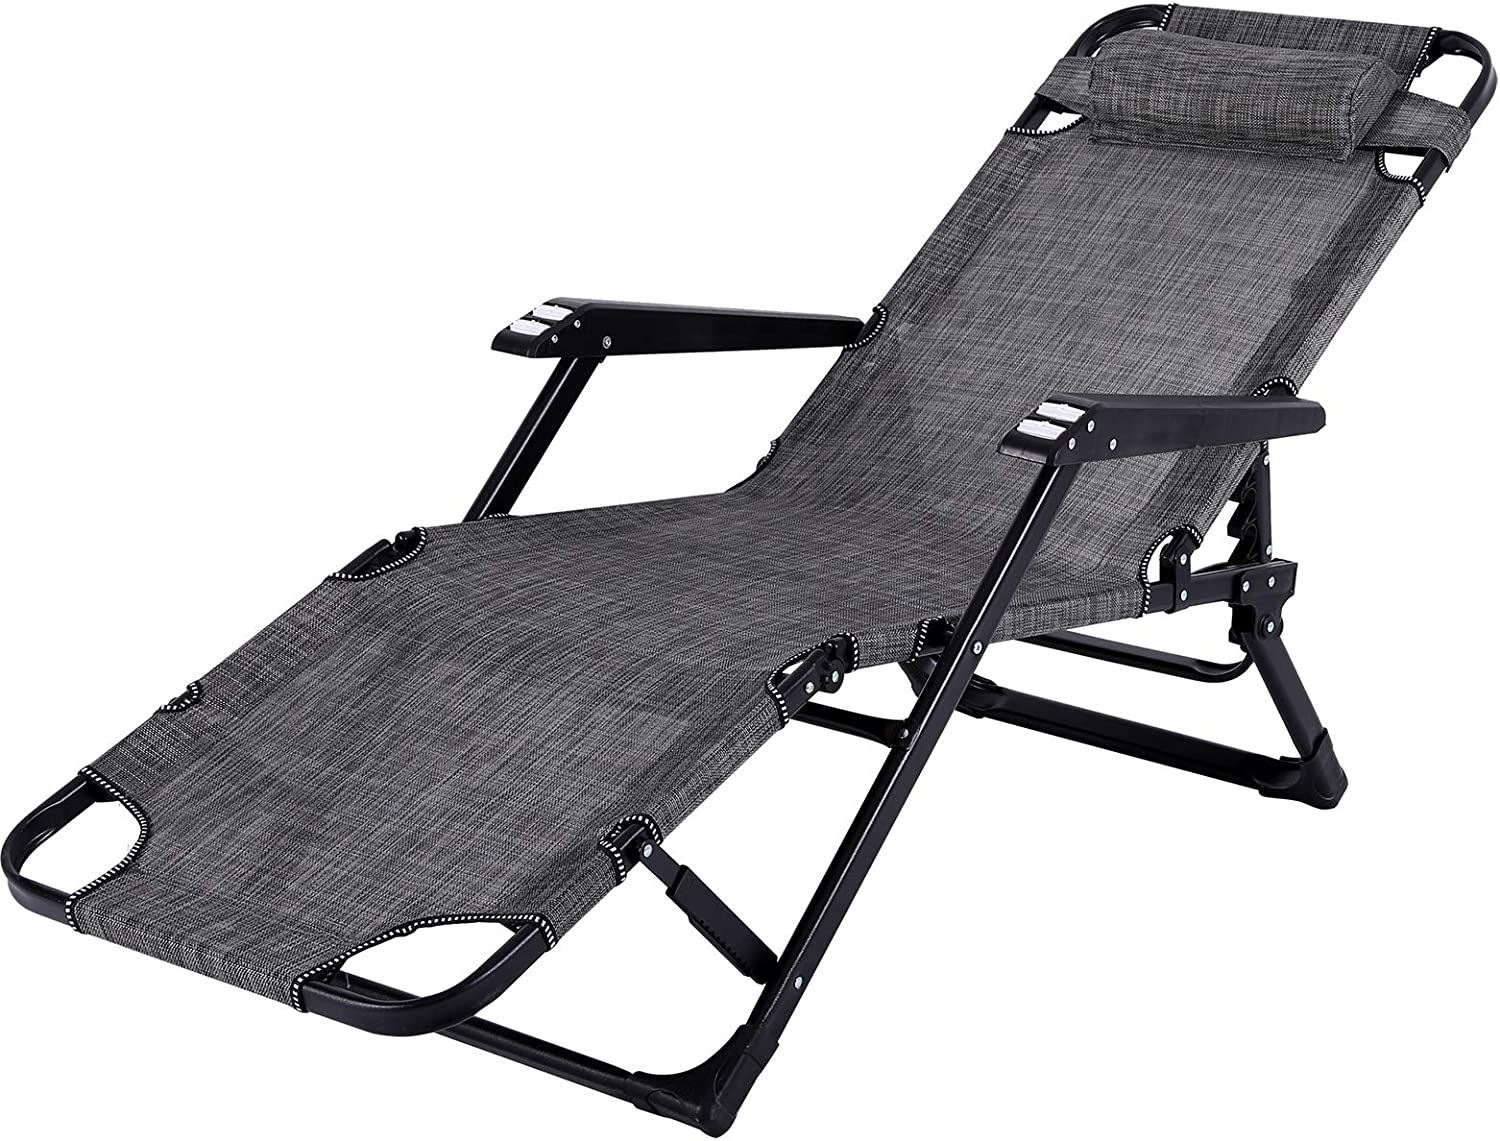 Limited time cheap sale LAJOSON Raleigh Mall Lounge Chairs Folding Bed Adjustable Recliner Patio Chai